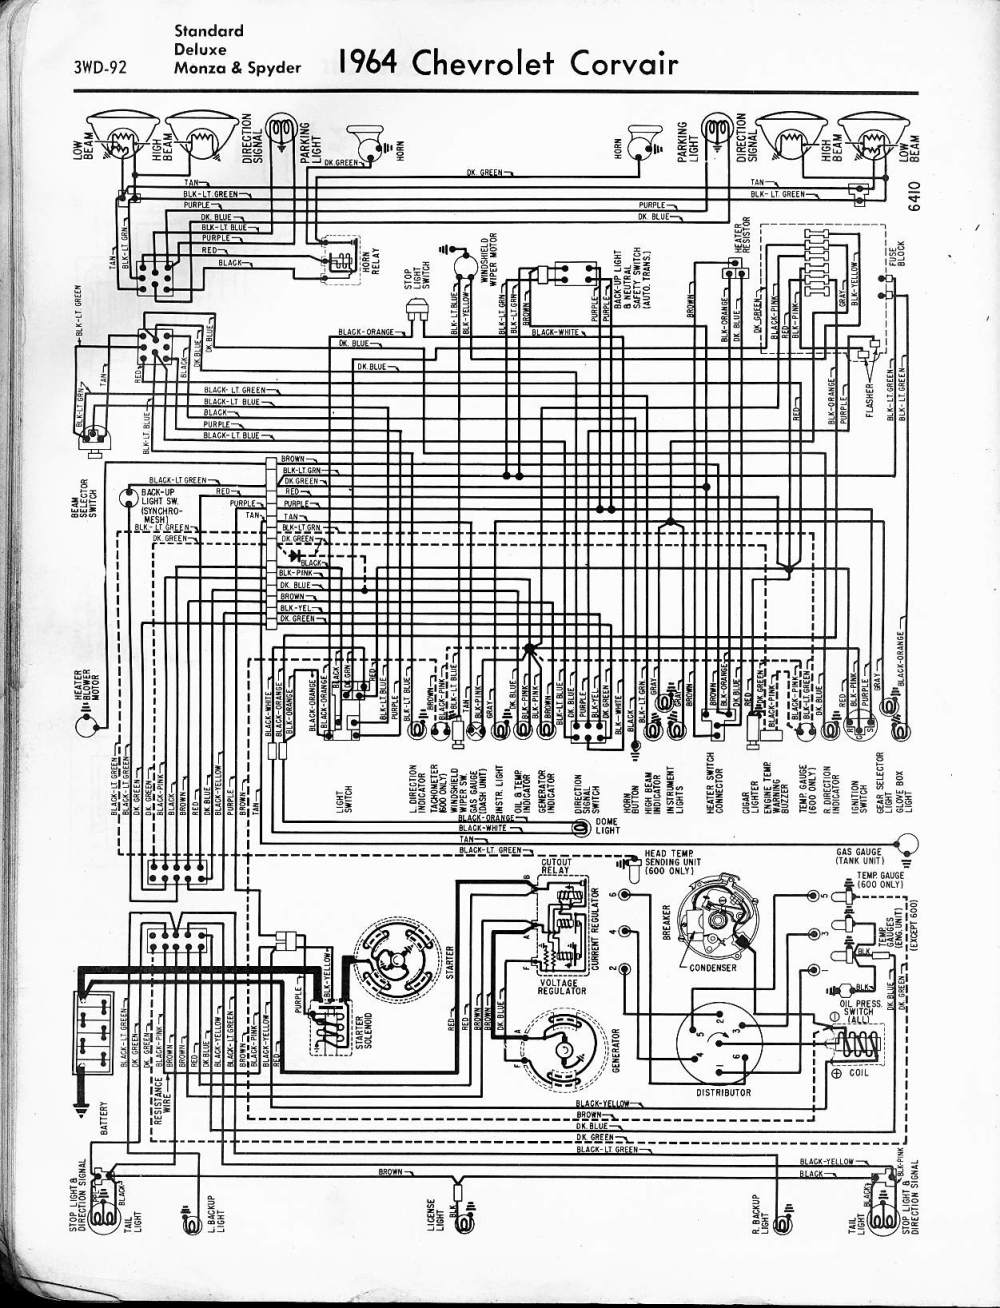 medium resolution of 57 65 chevy wiring diagrams1964 corvair std deluxe monza spyder